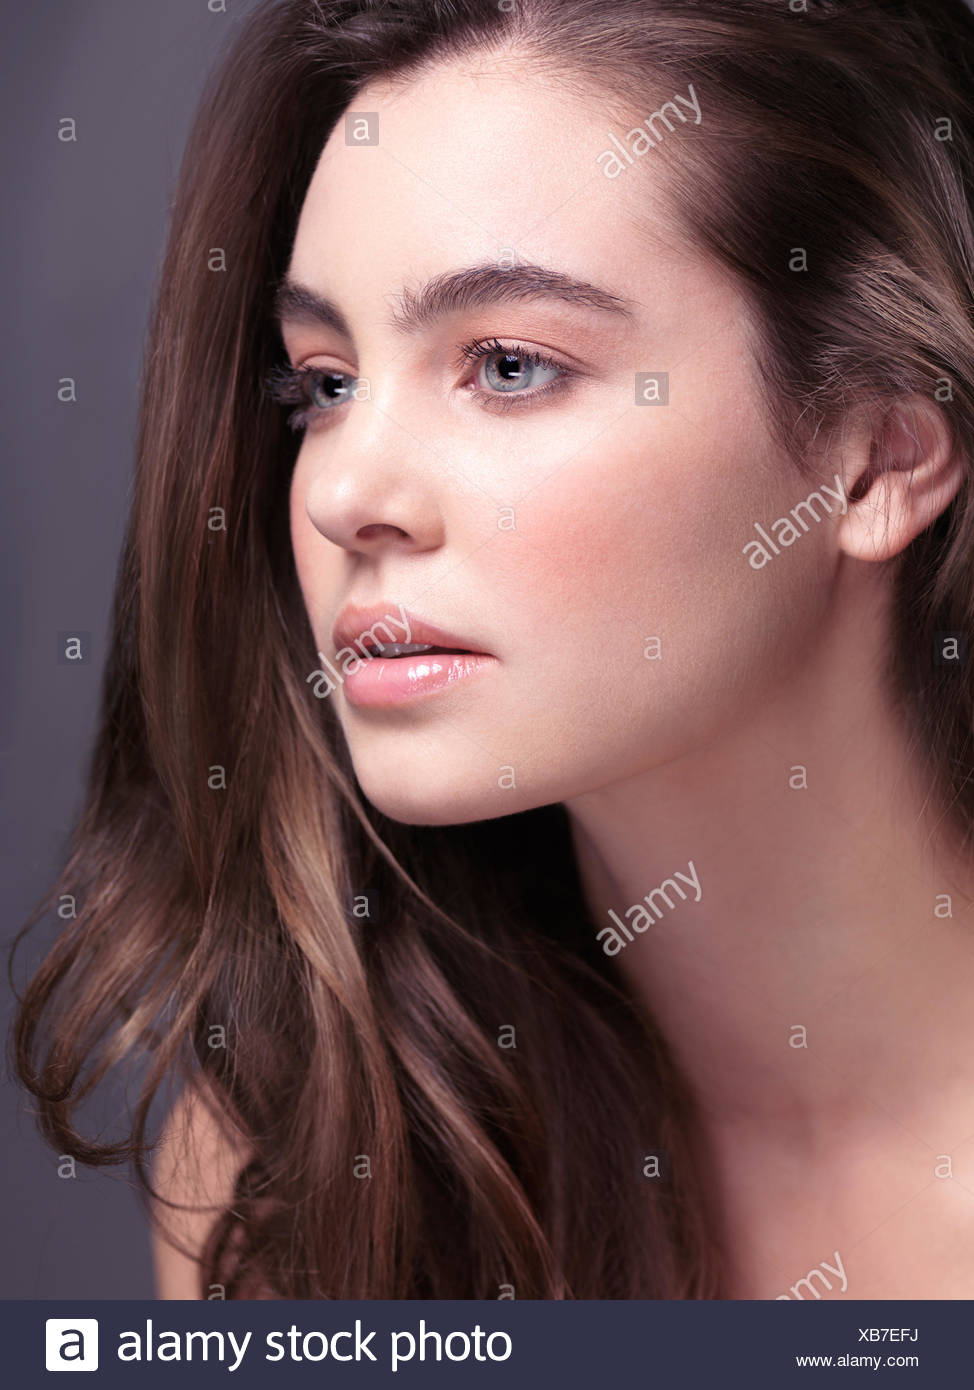 Beauty Portrait Of A Young Woman With Grey Eyes And Long